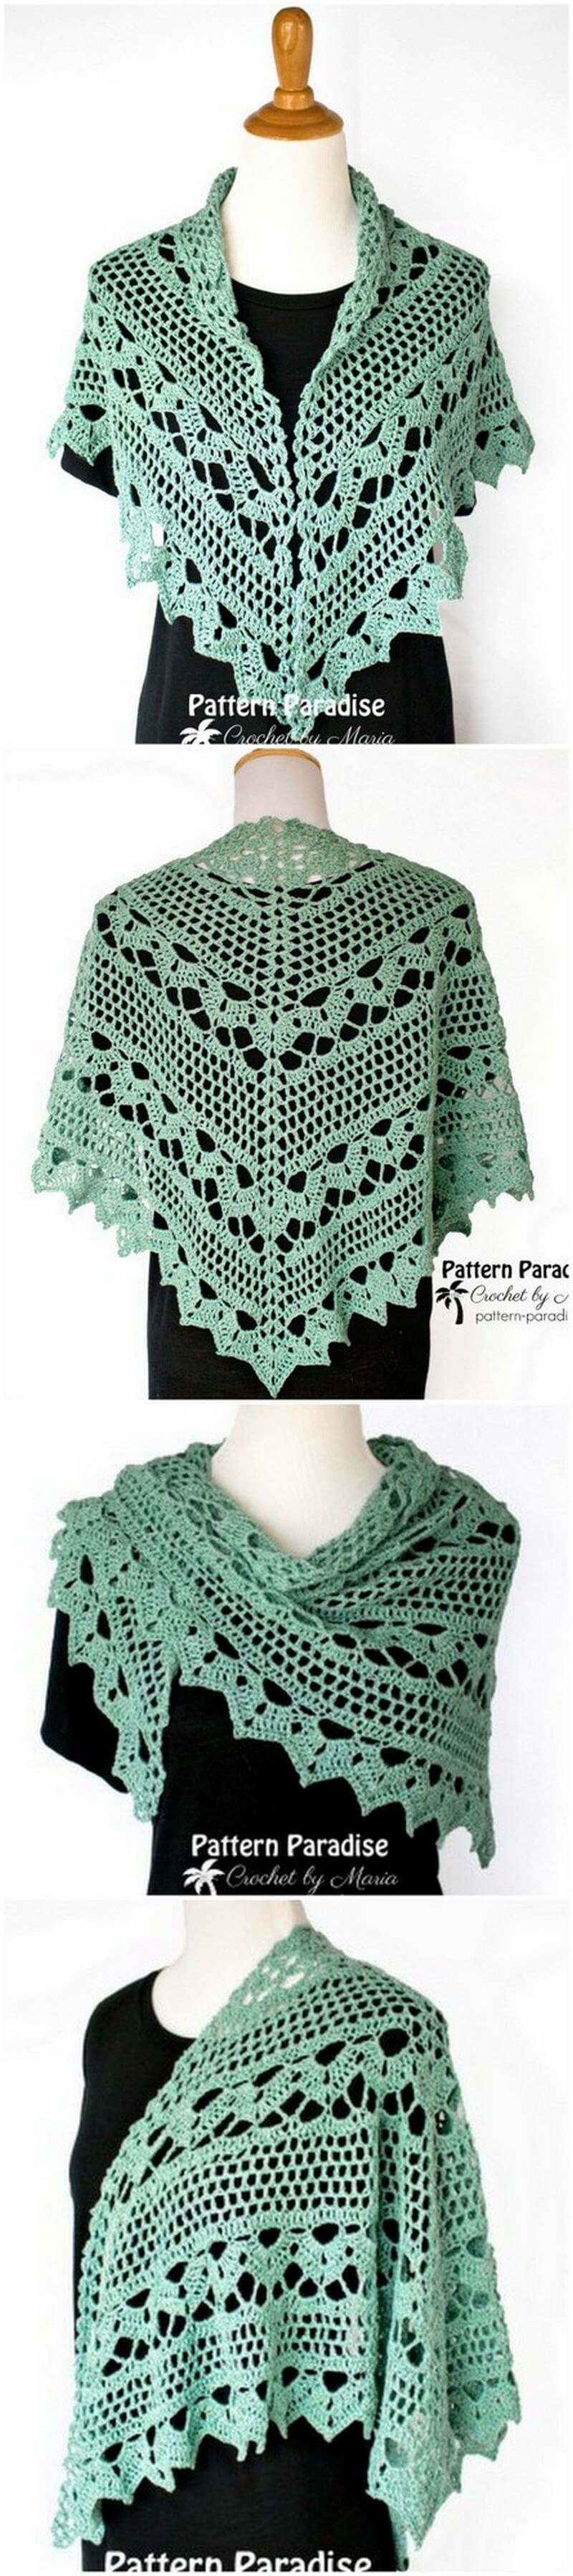 Crochet Shawl Pattern (4)